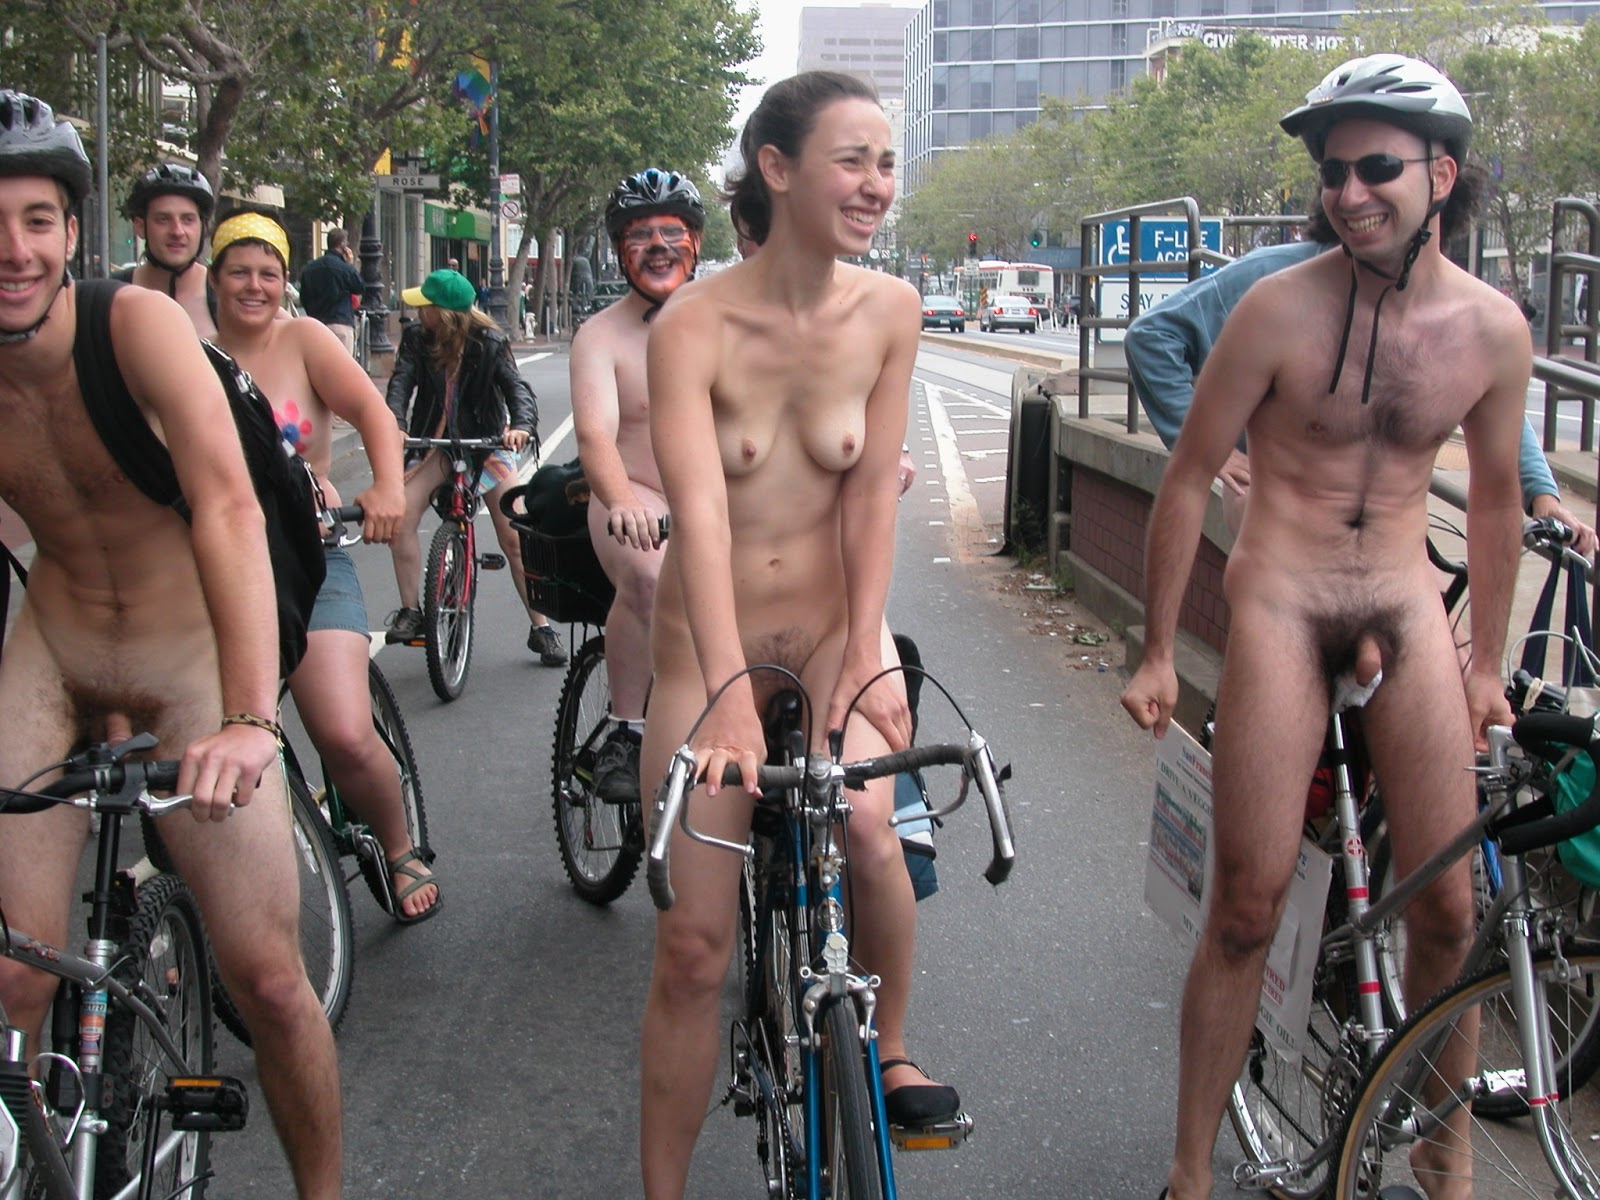 Naked cfnm zoomed ride groin bike